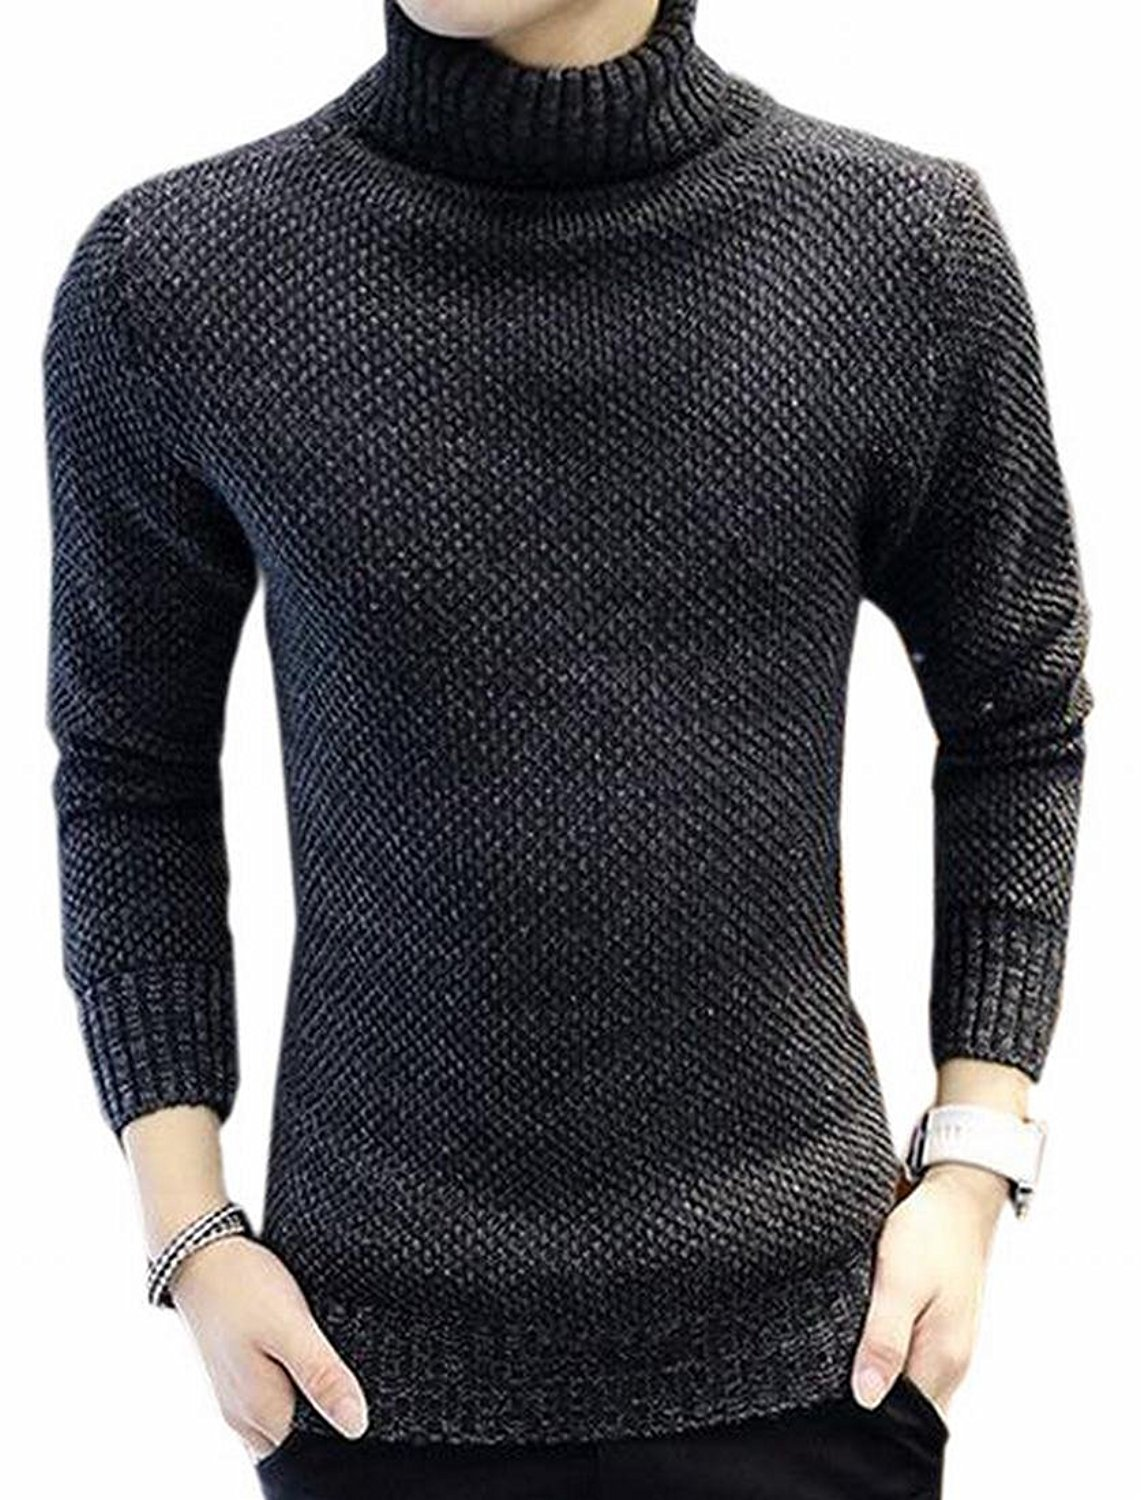 CBTLVSN Mens Casual Pullover Plus-Size Long-Sleeved Round Neck Slim Knit Sweater